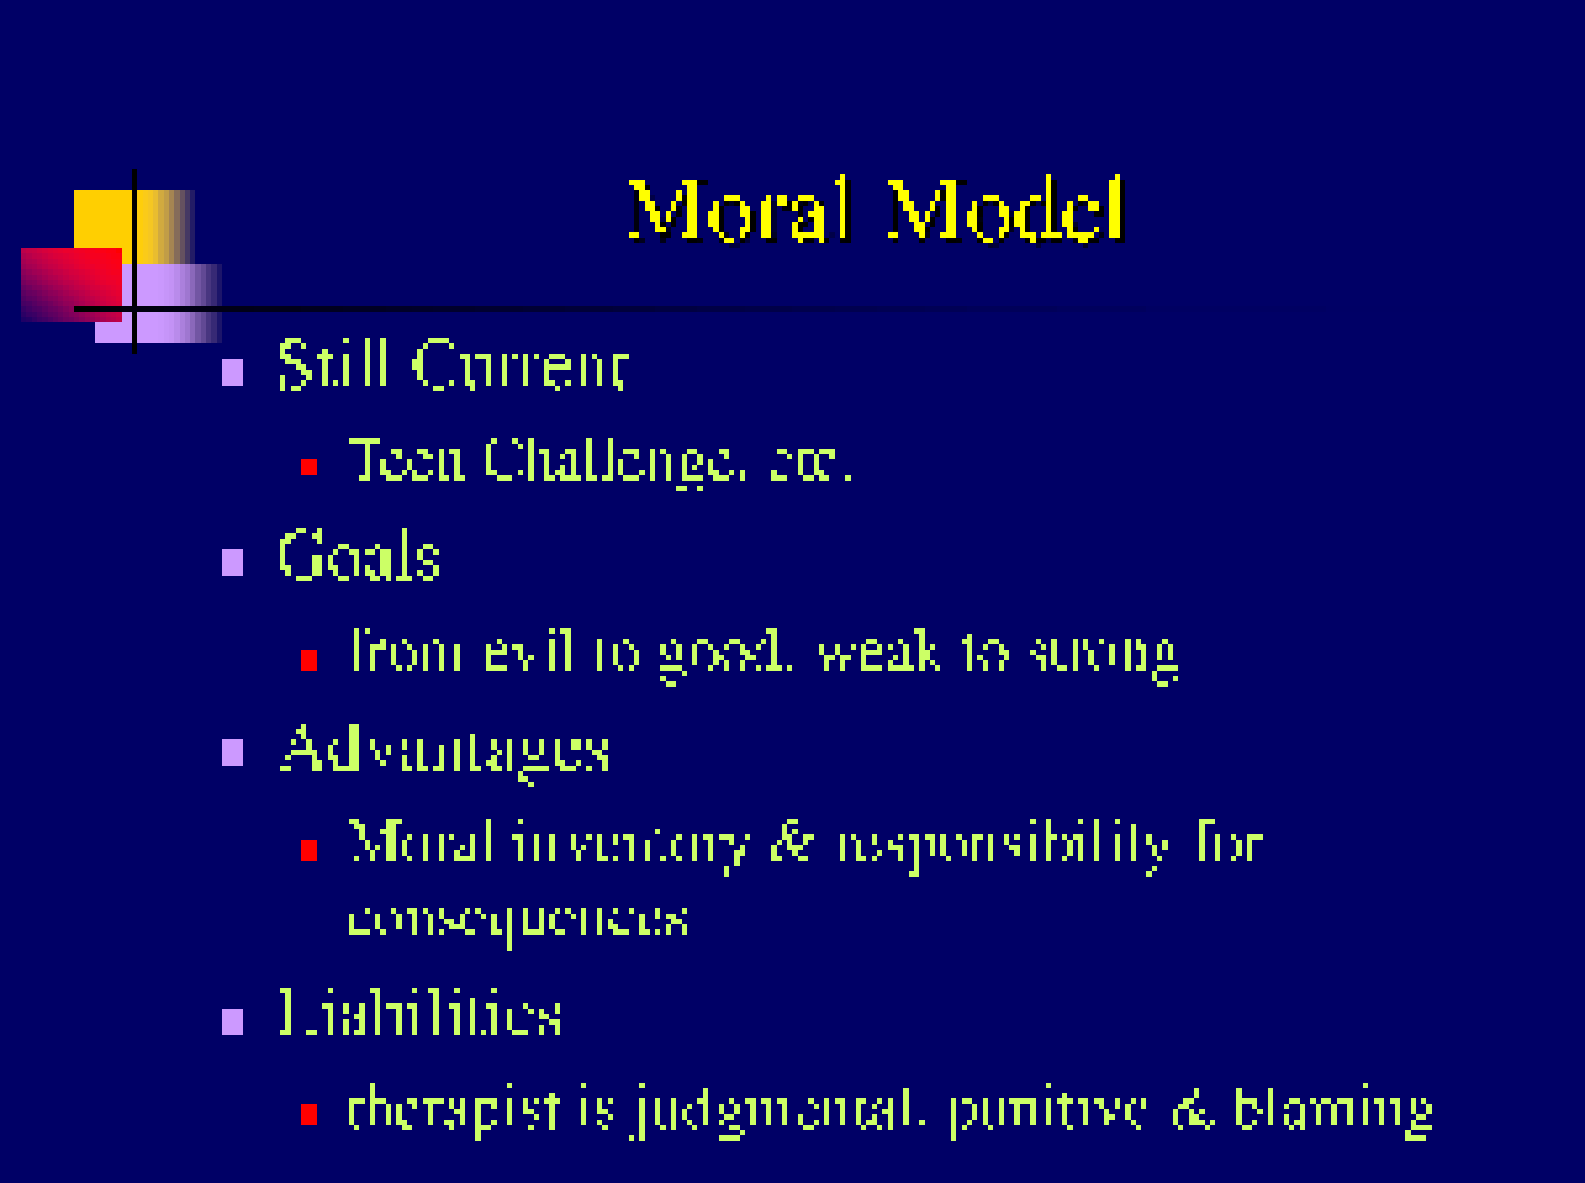 what is the moral model